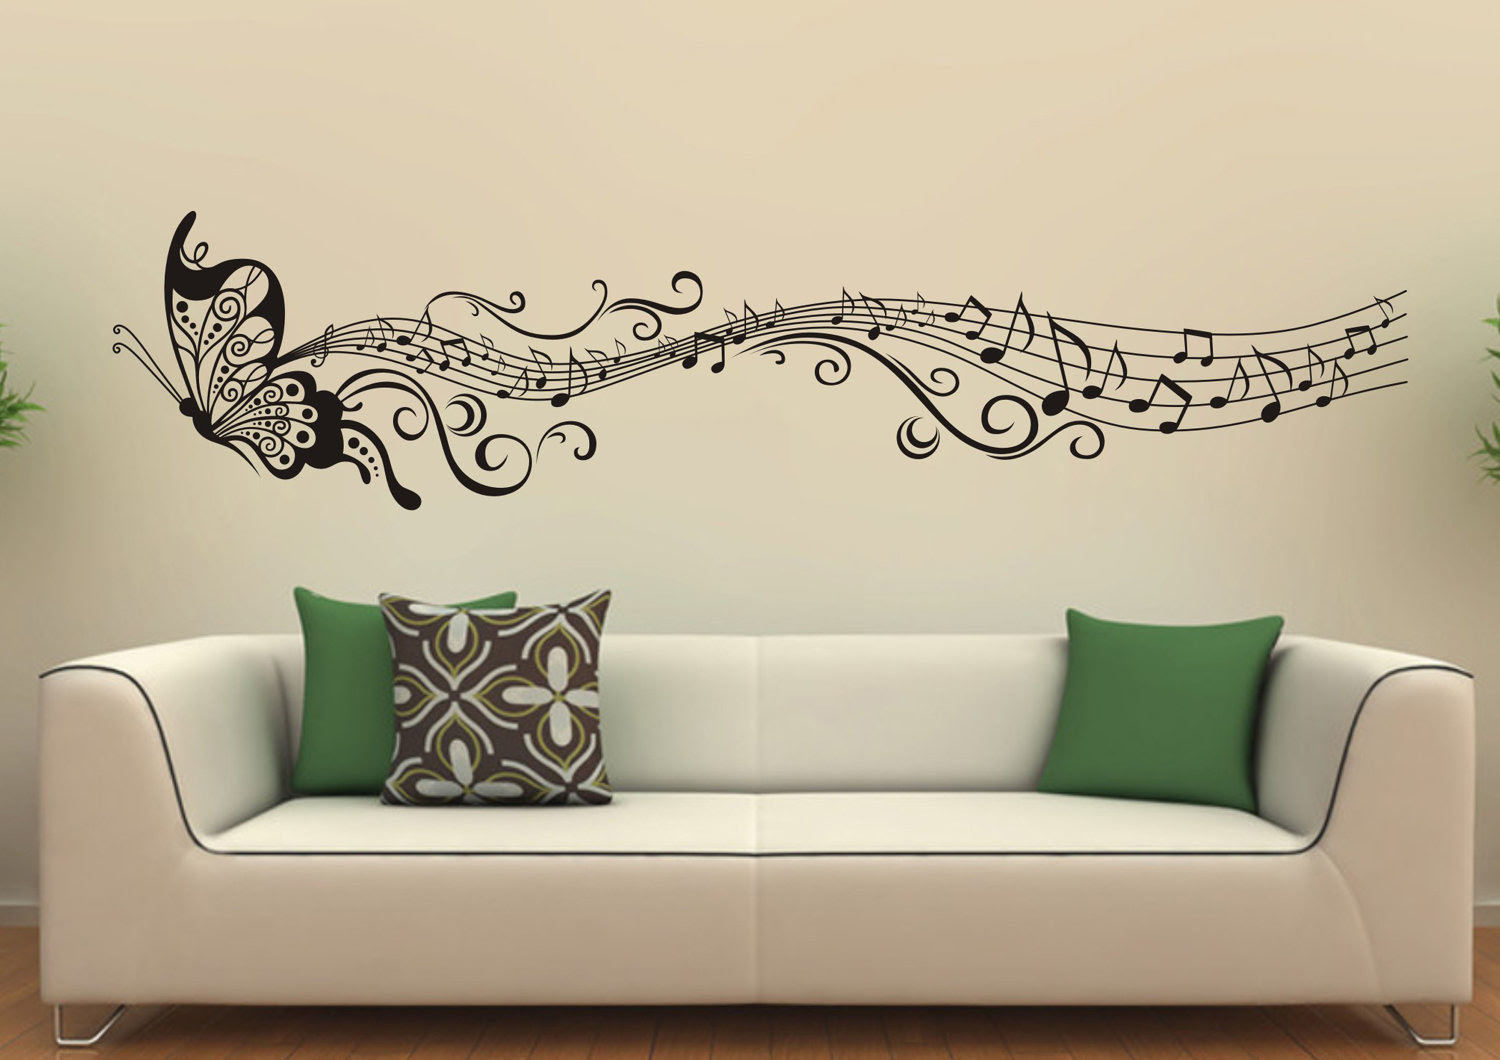 30 Wall Decor Ideas For Your Home - The WoW Style